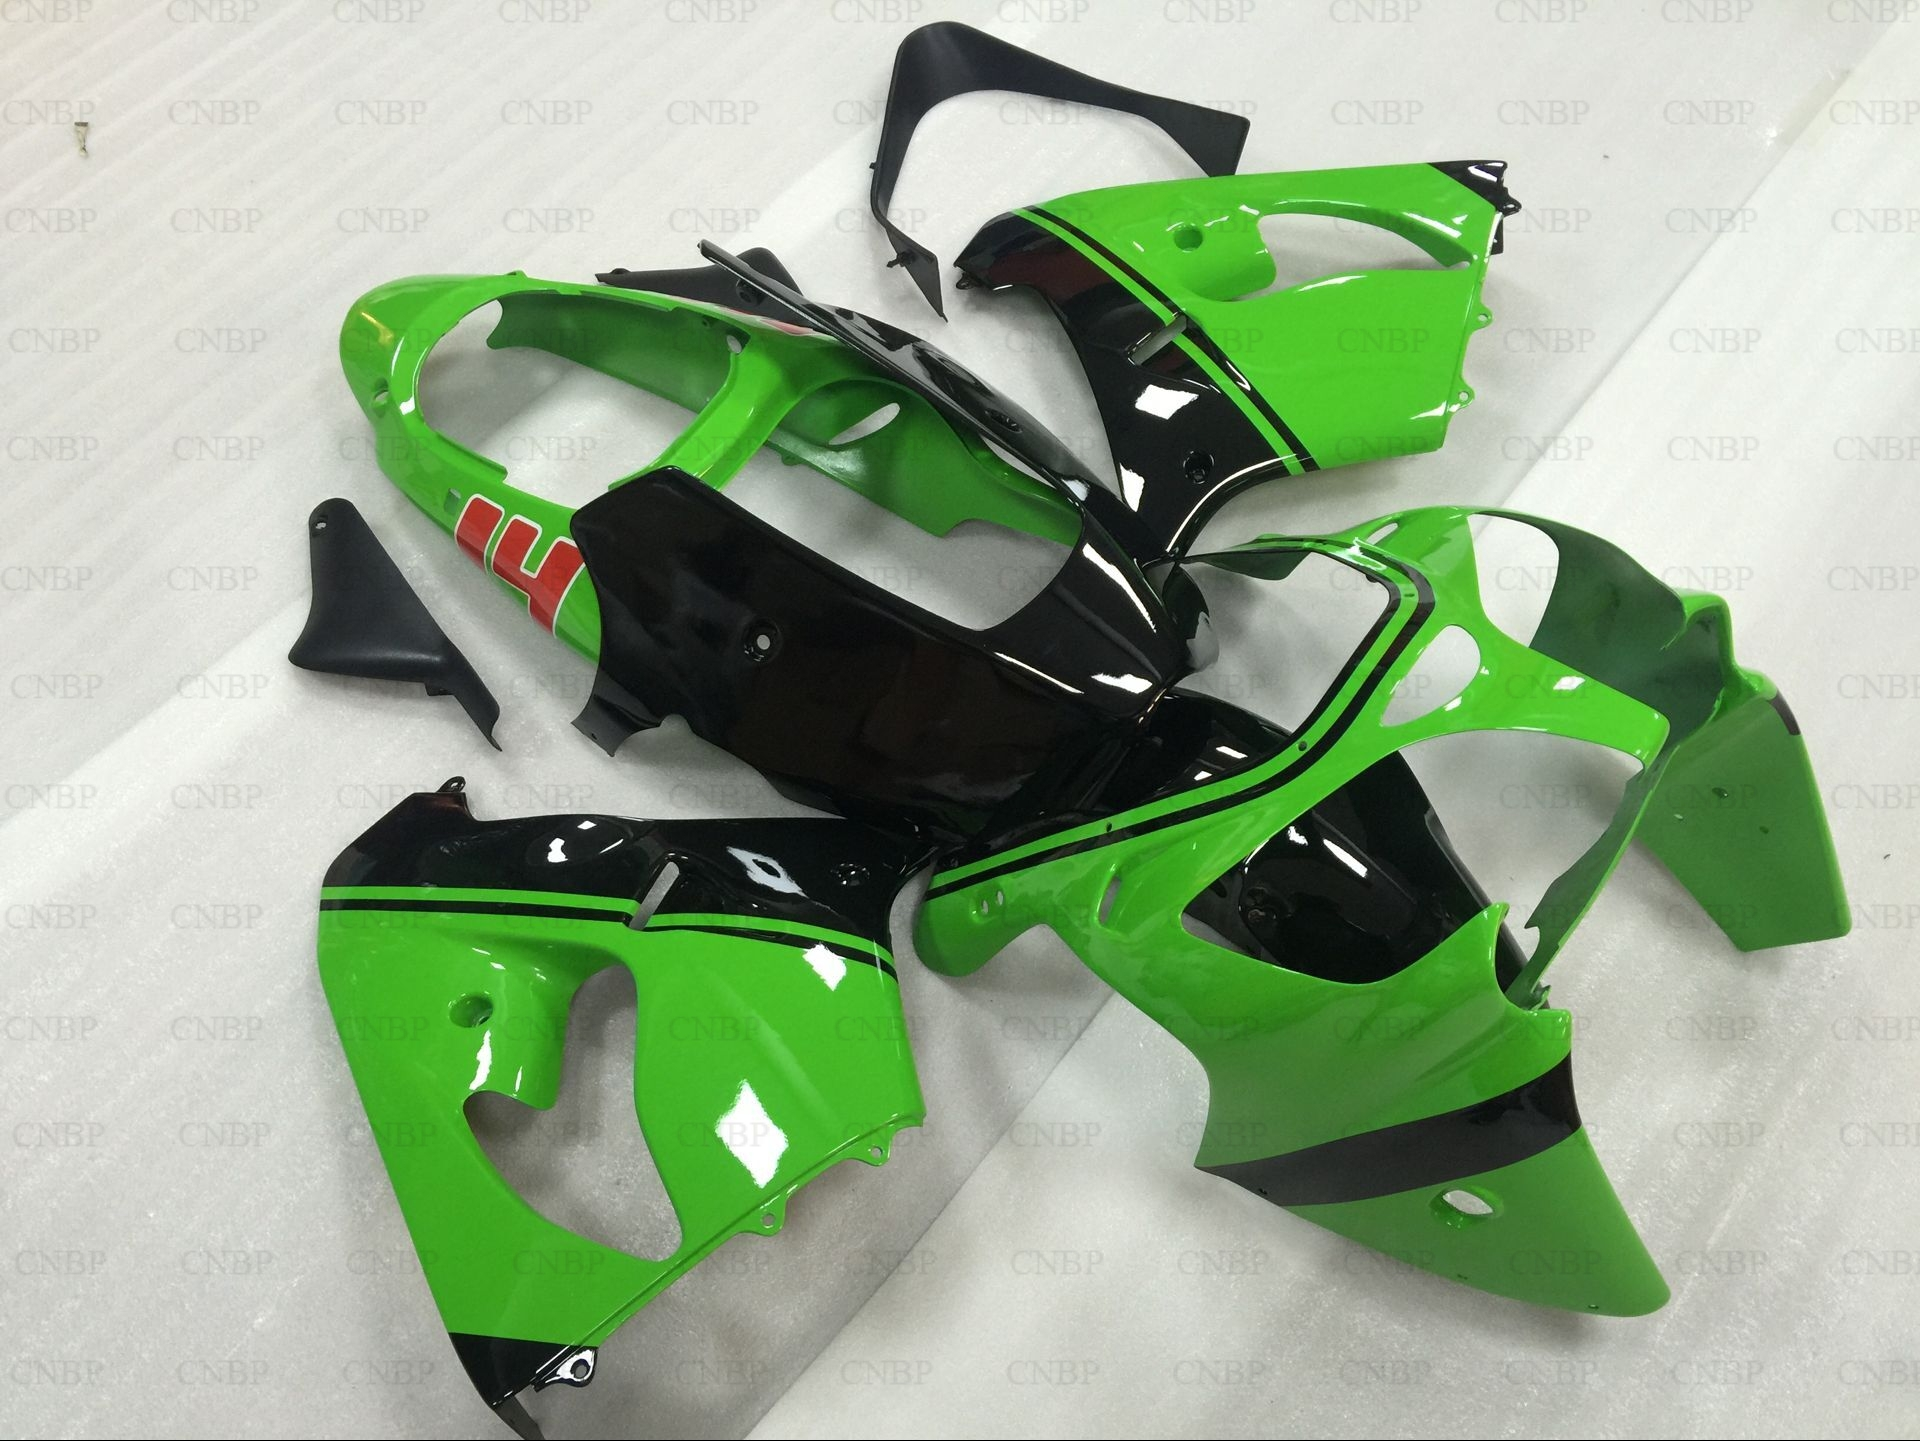 Fairing for Kawasaki Zx9r 01 Fairings Zx-9r 01 2000 - 2001 Green Black Motorcycle Fairing Zx9r 00 for 2002 2005 kawasaki ninja zx9r zx 9r motorcycle rear passenger seat cover cowl black 01 02 03 04 05